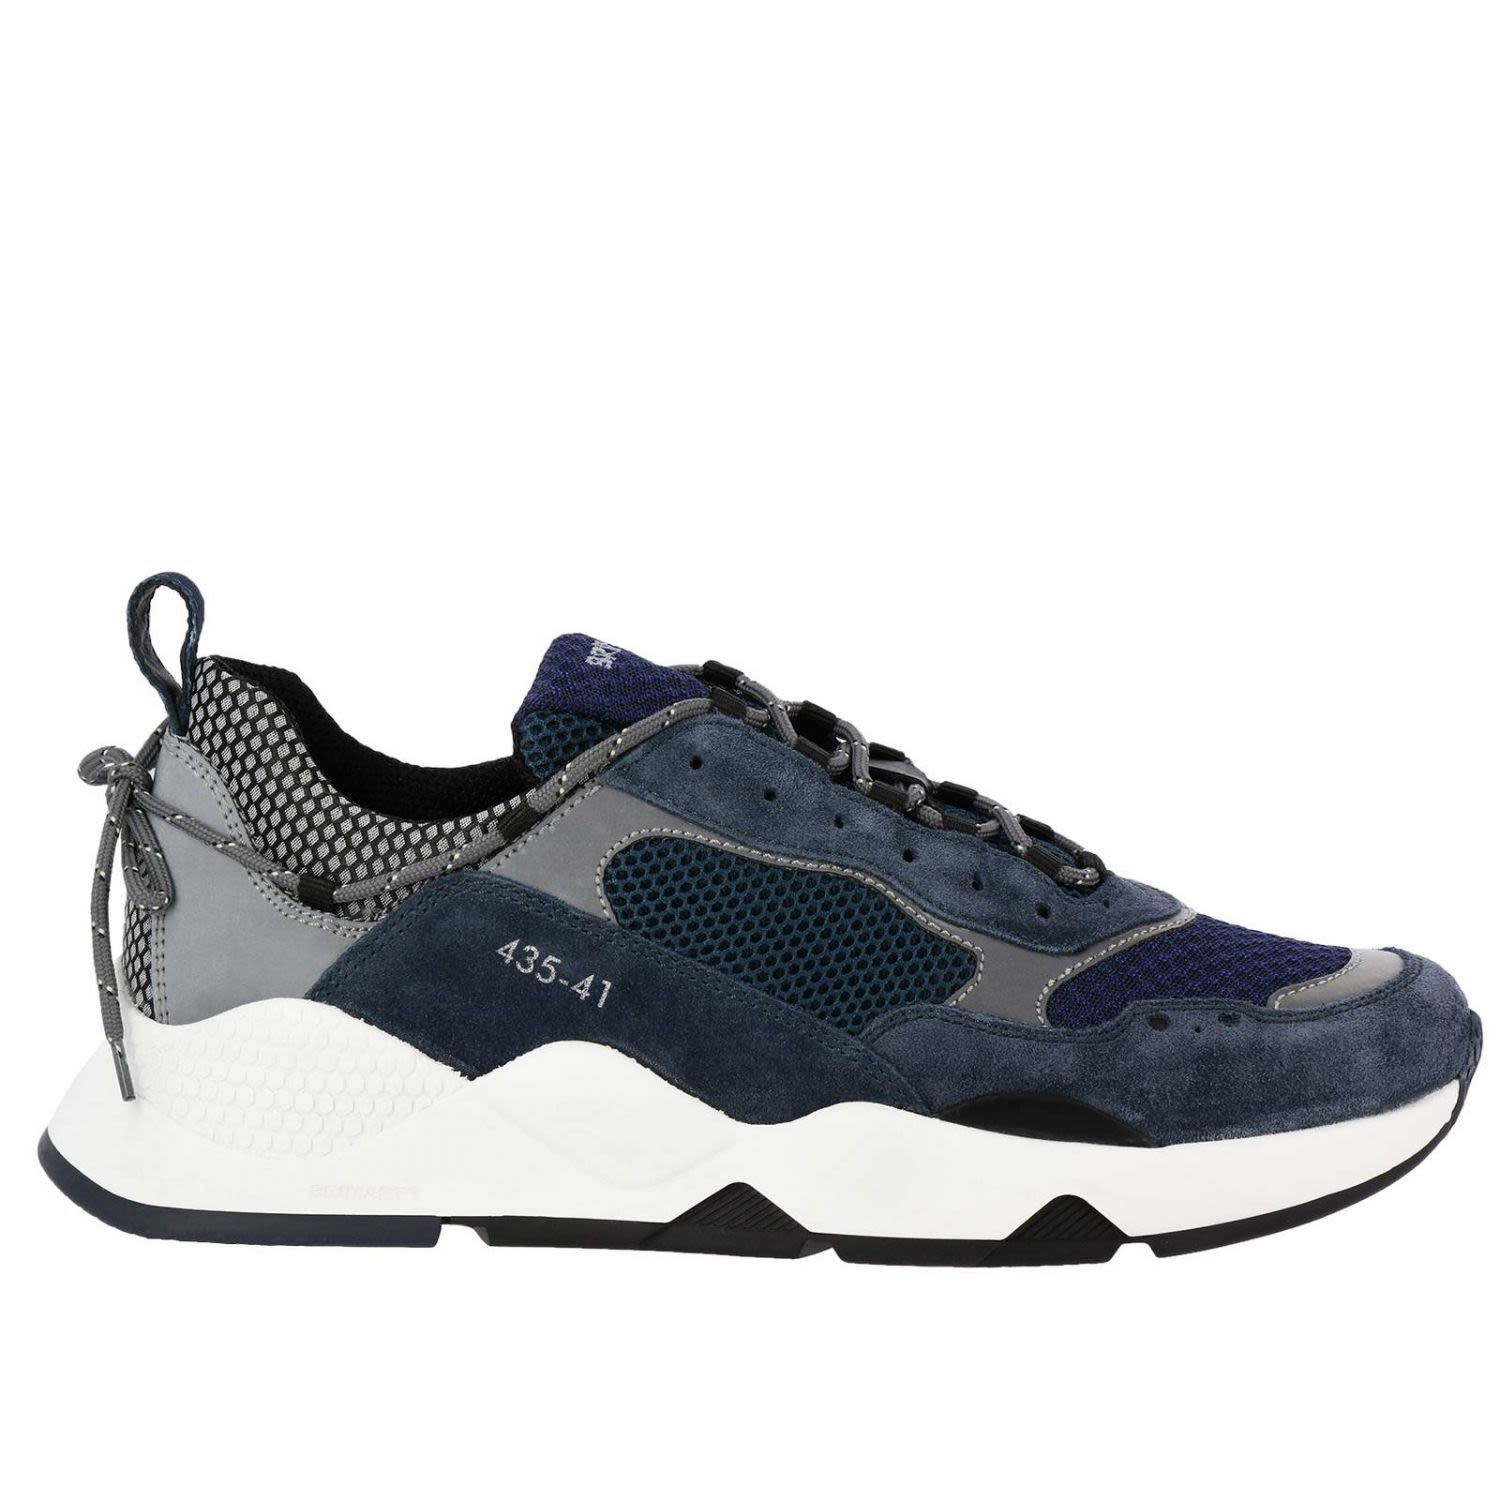 Brimarts Sneakers Shoes Men Brimarts